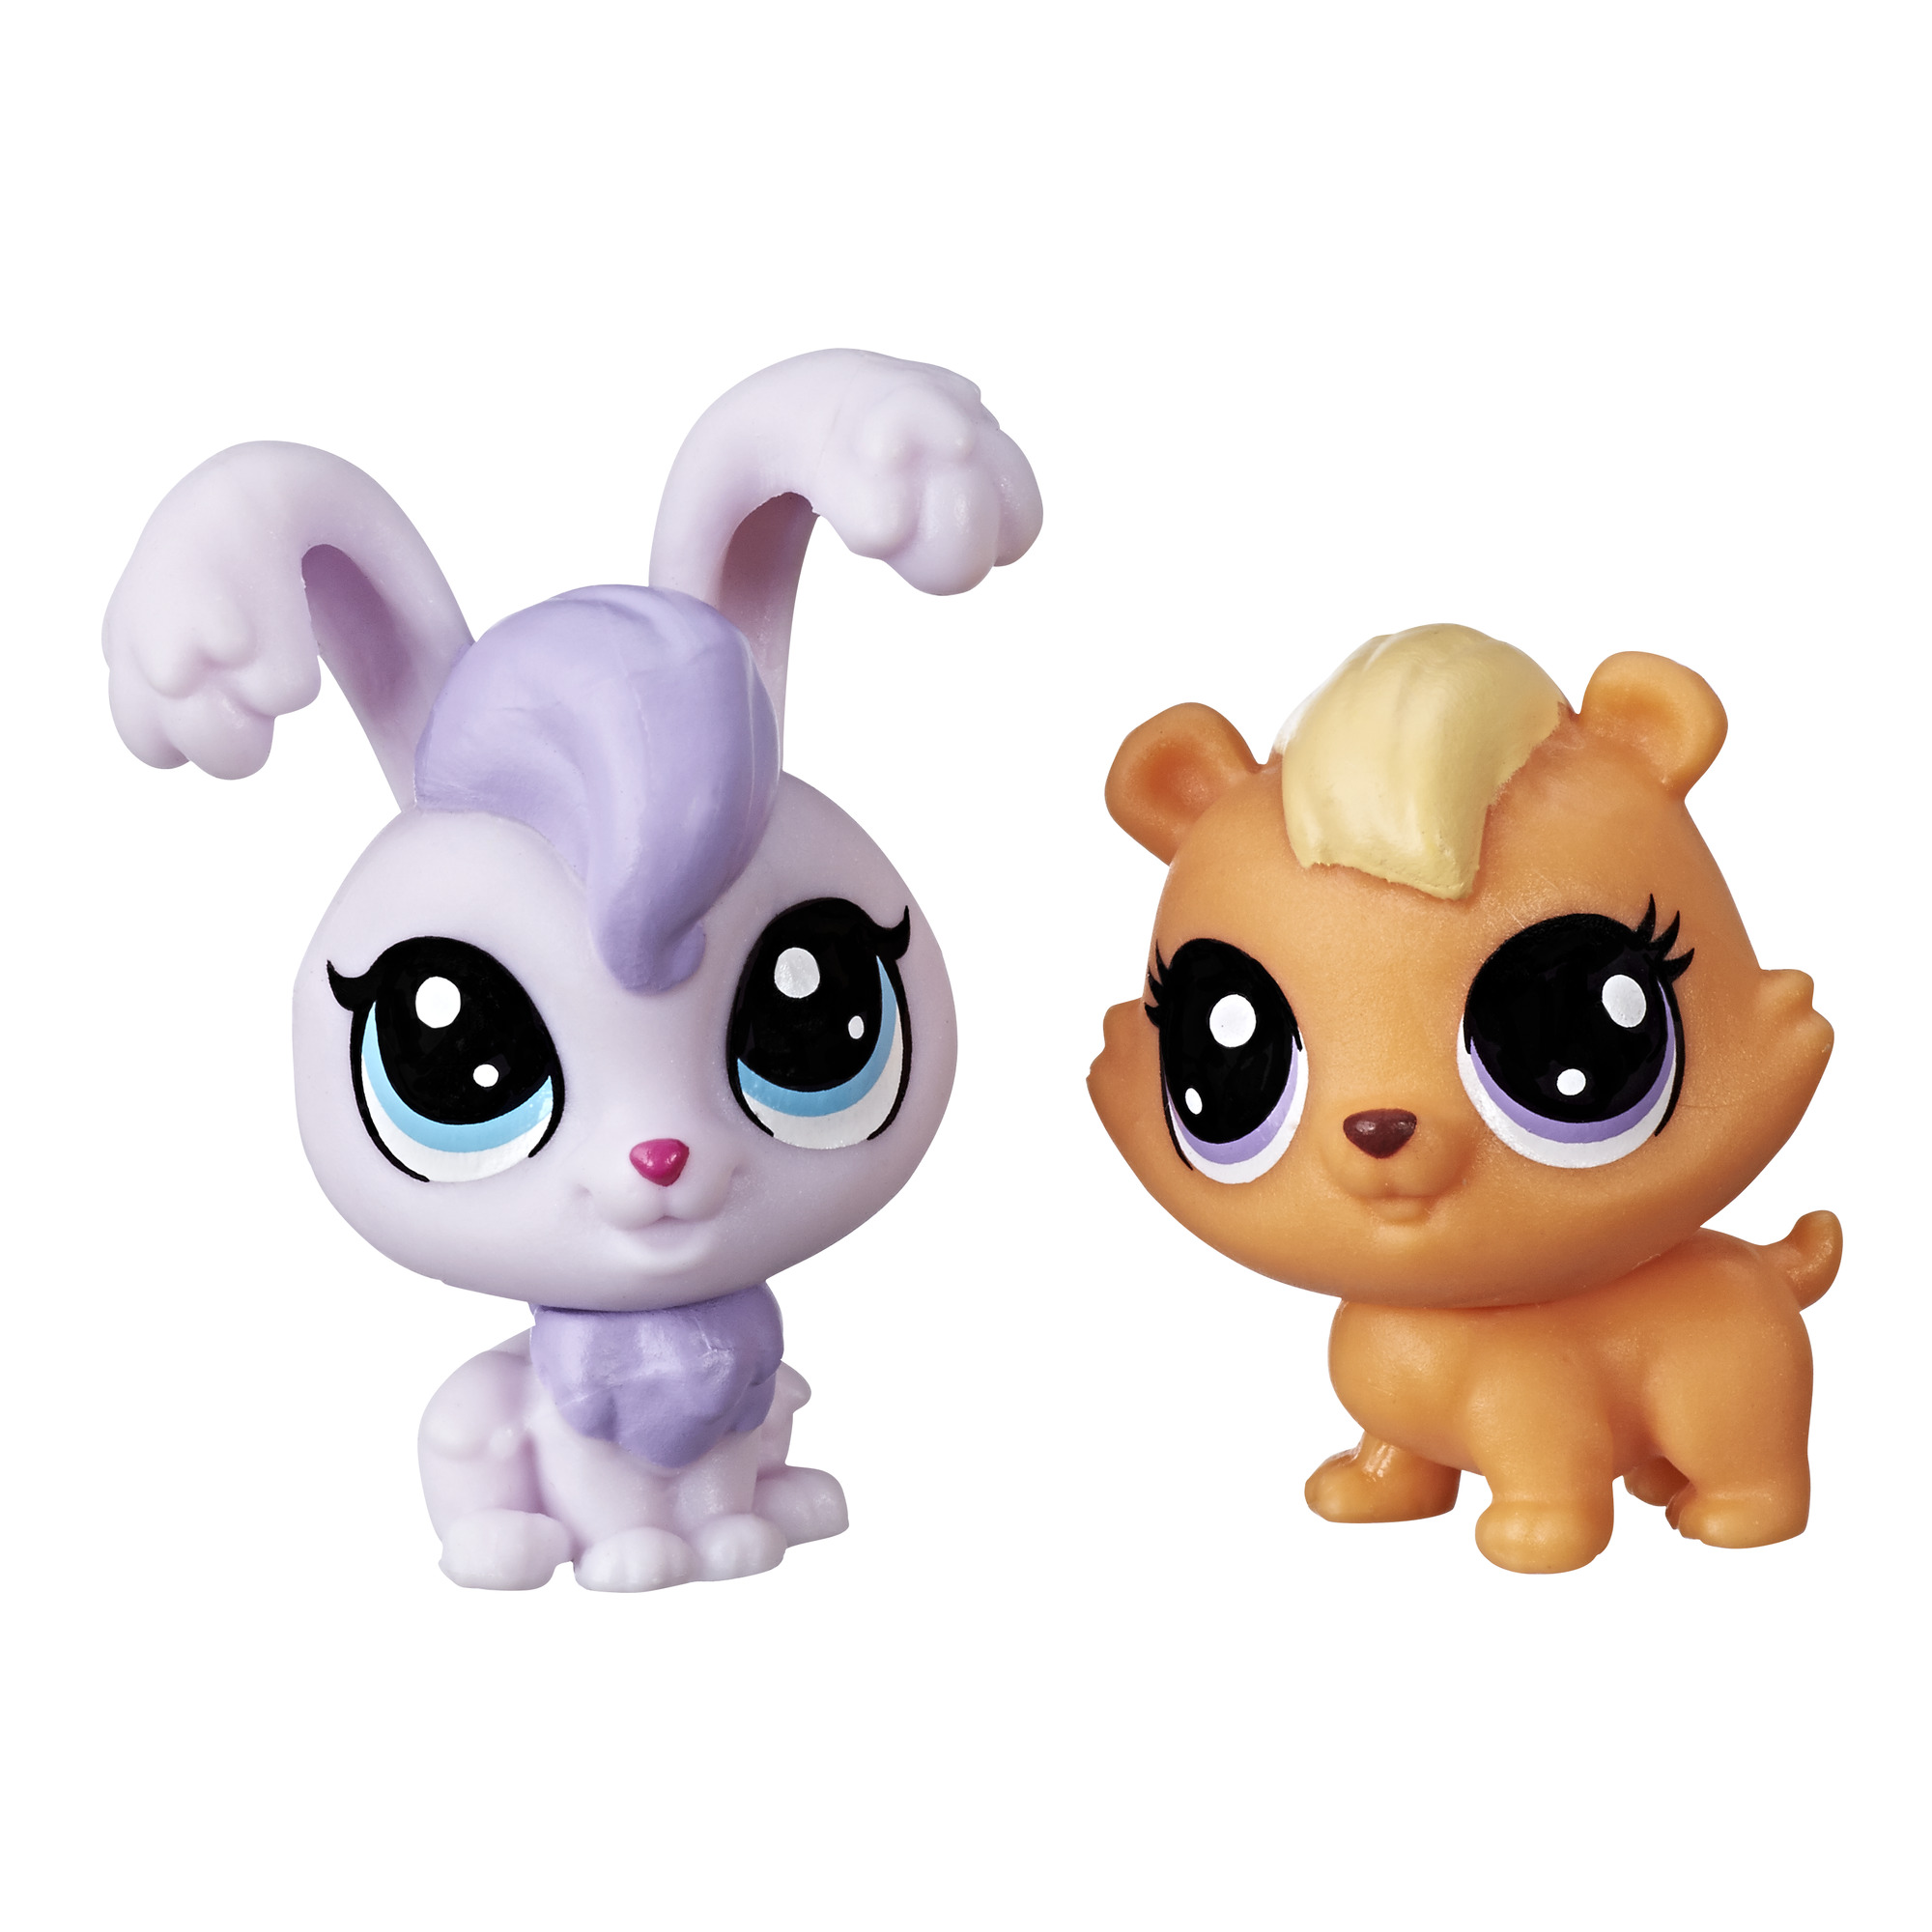 LITTLEST PET SHOP MAIL AWAY SPECIAL EDITION BAY PANDA LEI YANG #4022 BRAND NEW